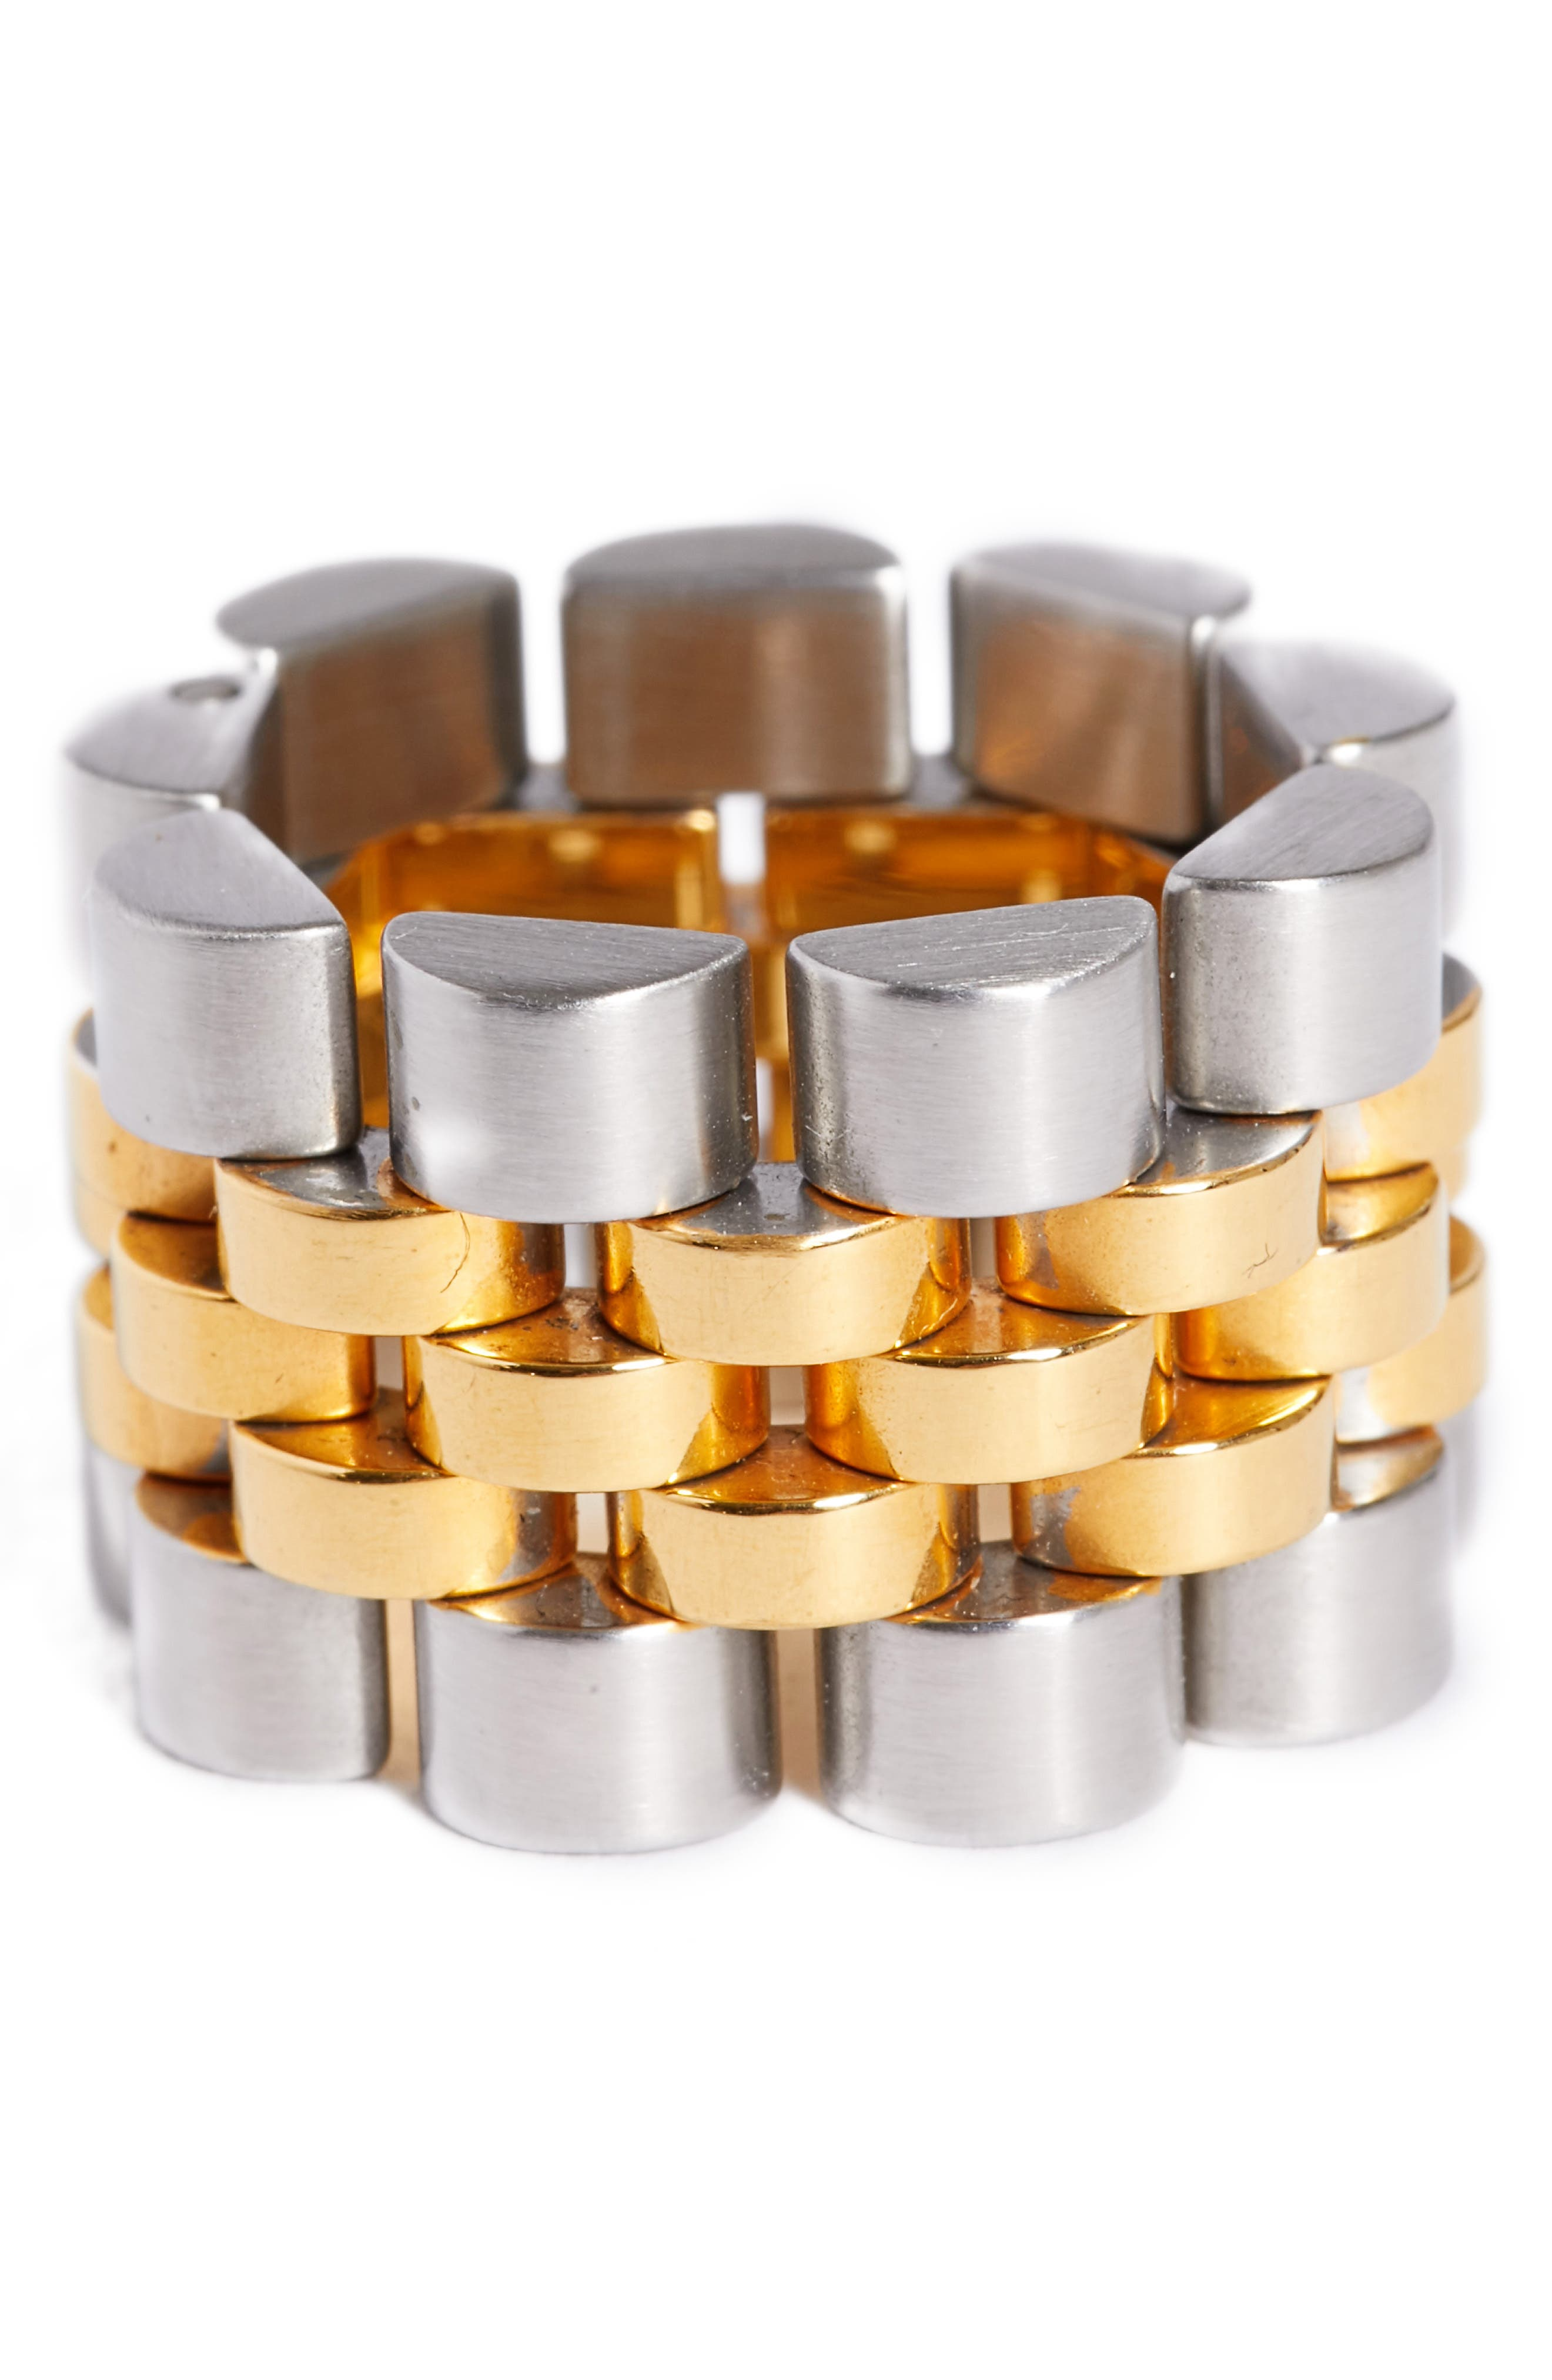 Watch Strap Ring,                         Main,                         color, Gold